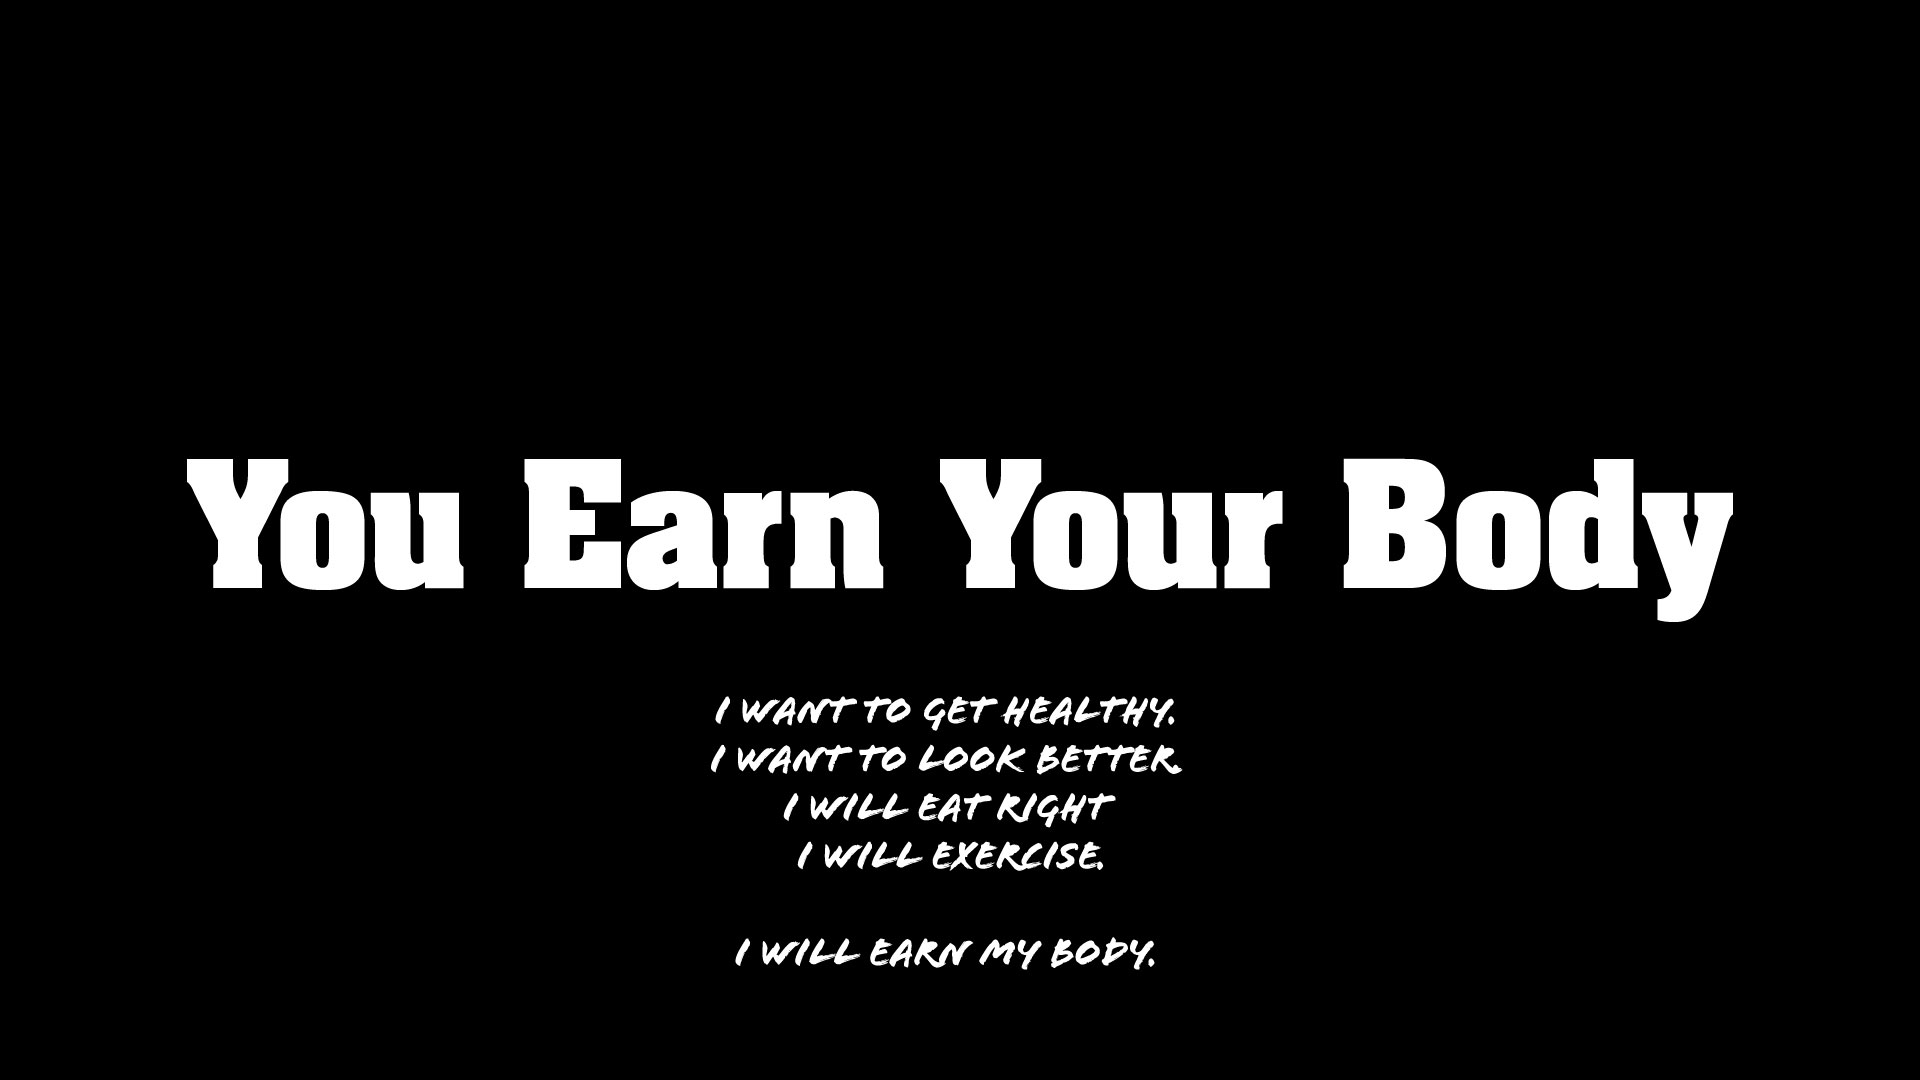 Bodybuilding & Fitness Motivation - You Earn Your Body ...